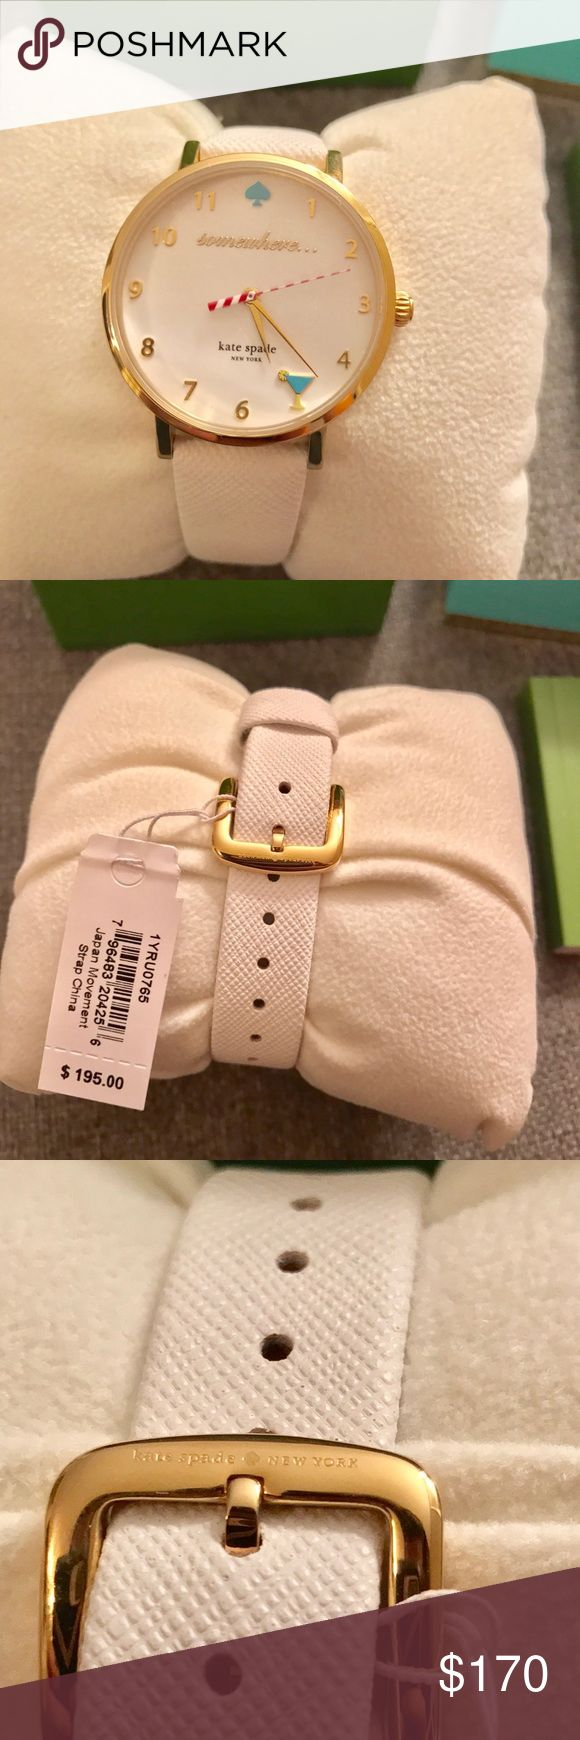 """Kate Spade White Leather 5 O'Clock Somewhere Watch Brand new Kate Spade New York Goldtone Metro 5 O'Clock Somewhere Vachetta Leather Watch. White enamel dial, martini glass at 5 O'Clock mark, inscription reads """"somewhere"""", water resistant, 34mm case. Make an offer. kate spade Accessories Watches"""